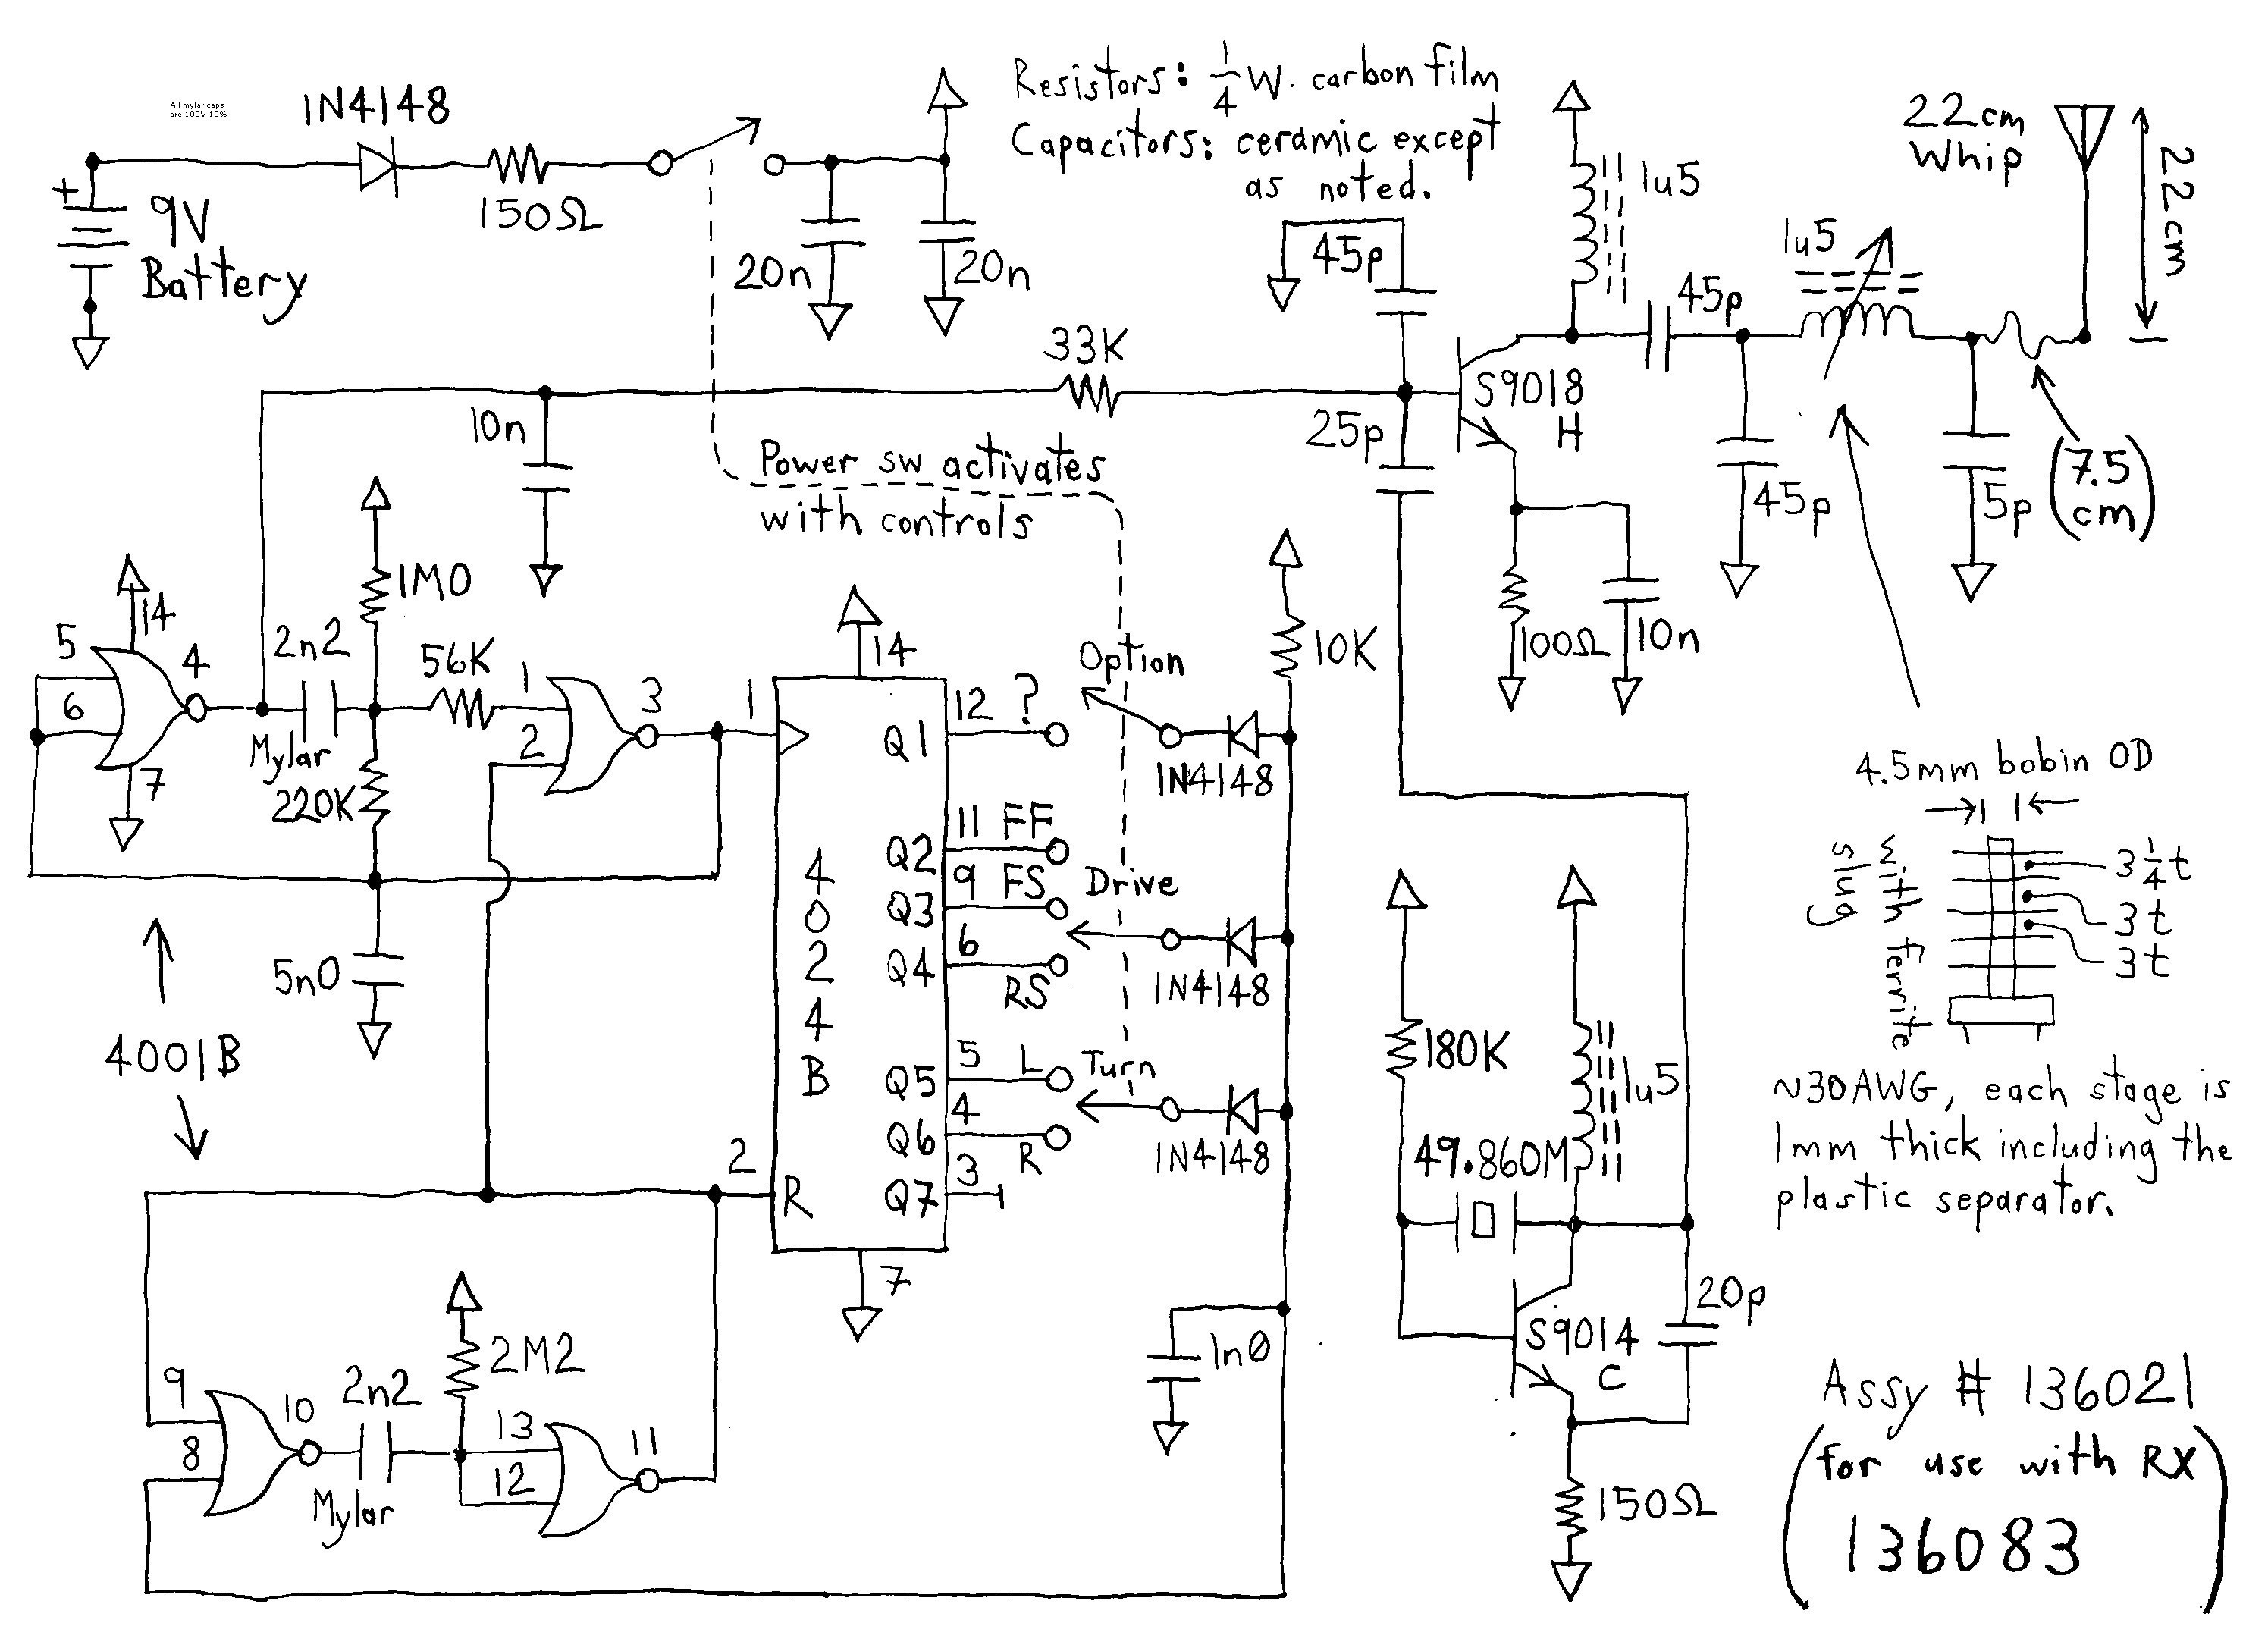 cm hoist wiring diagram Download-Wiring Diagram for Car Hoist Inspirationa New Automotive Electrical Wiring Diagram Symbols 15-a